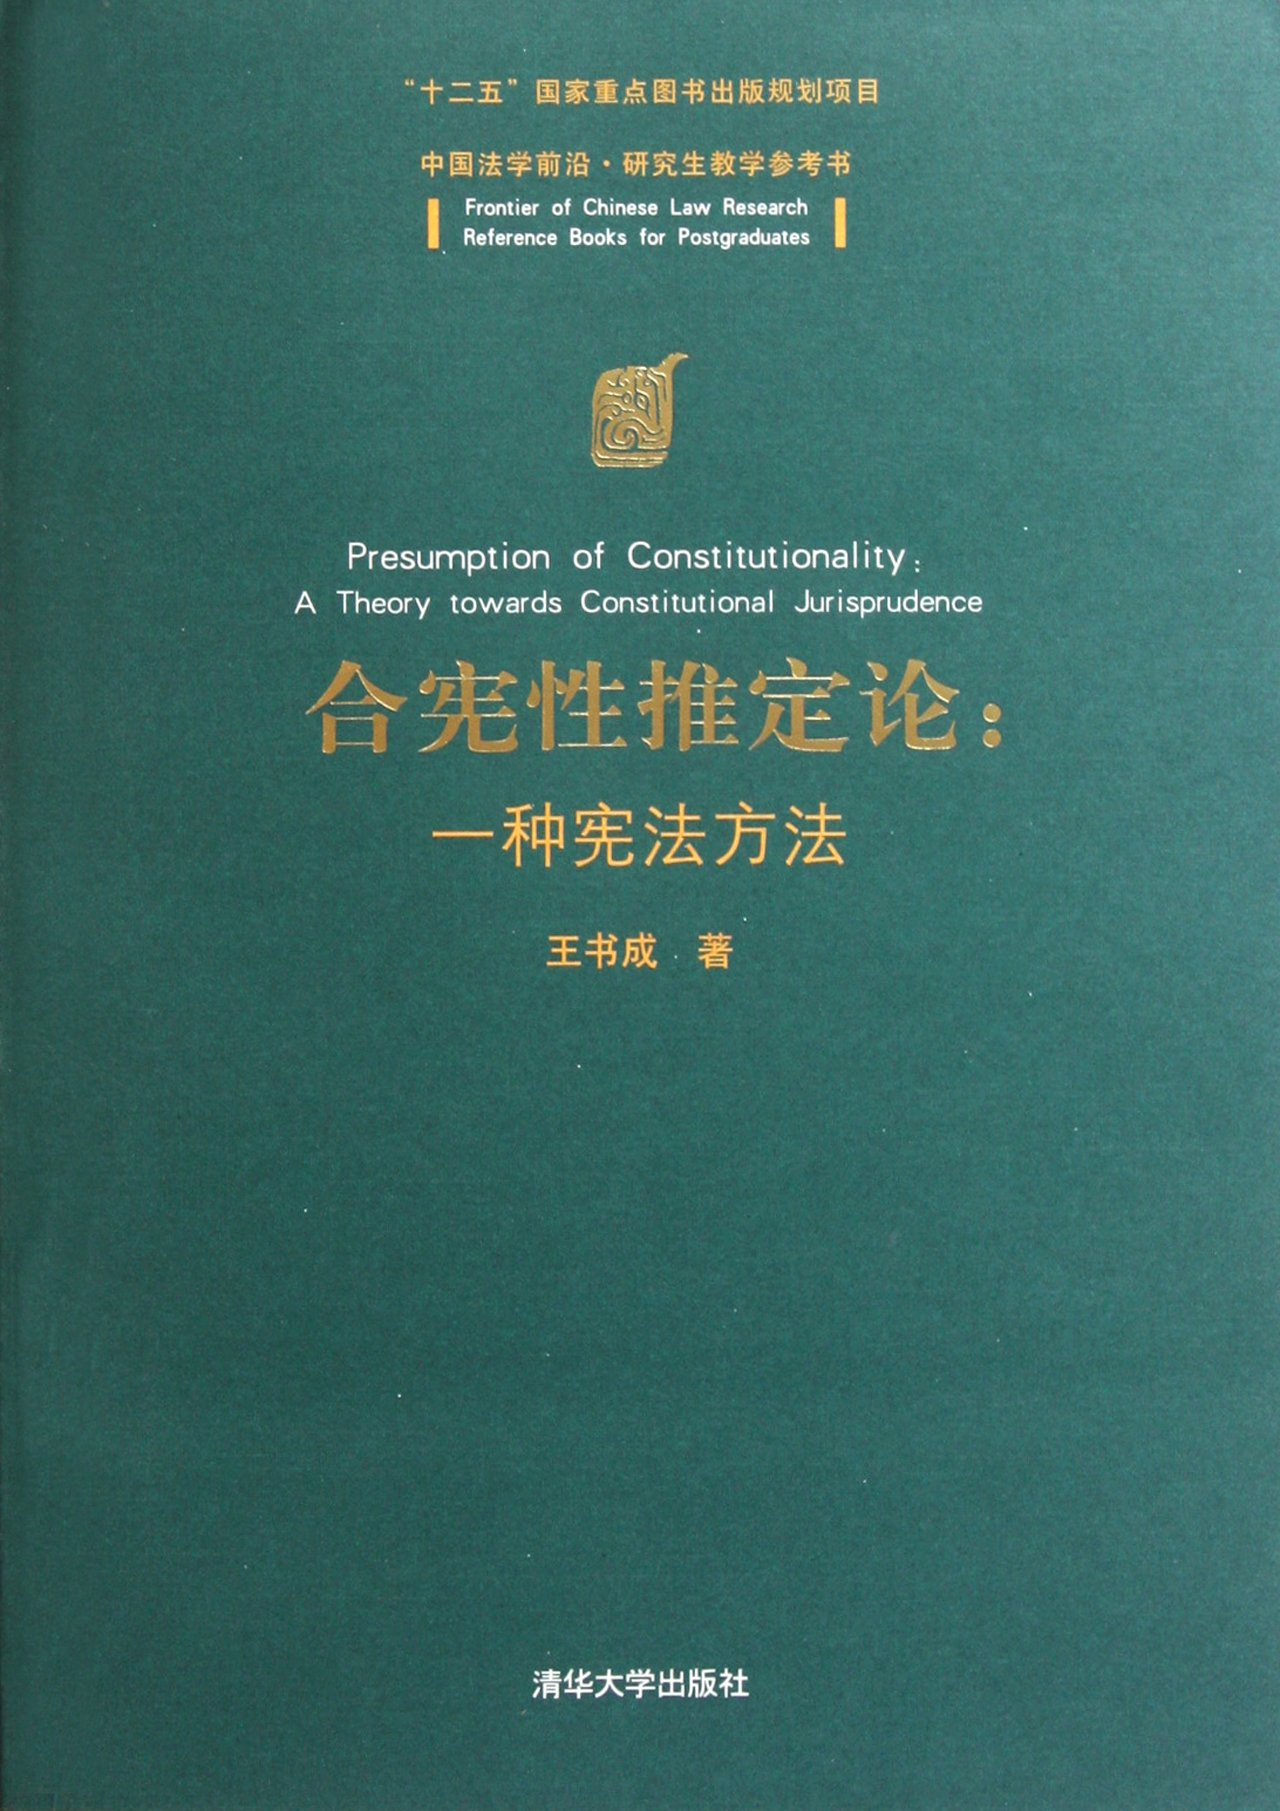 PRESUMPTION OF CONSTITUTIONALITY DOWNLOAD